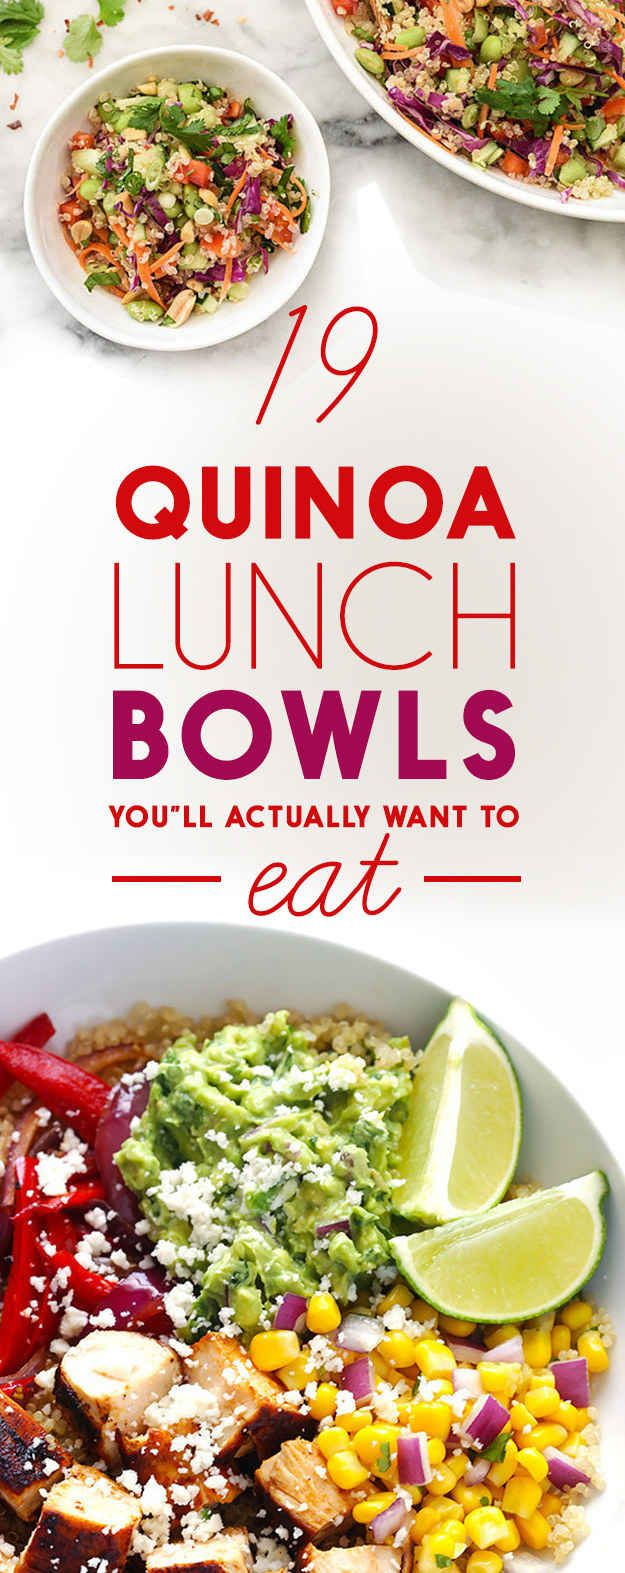 diamond jewelers  Quinoa Salads That Will Make You Feel Good About Your Life